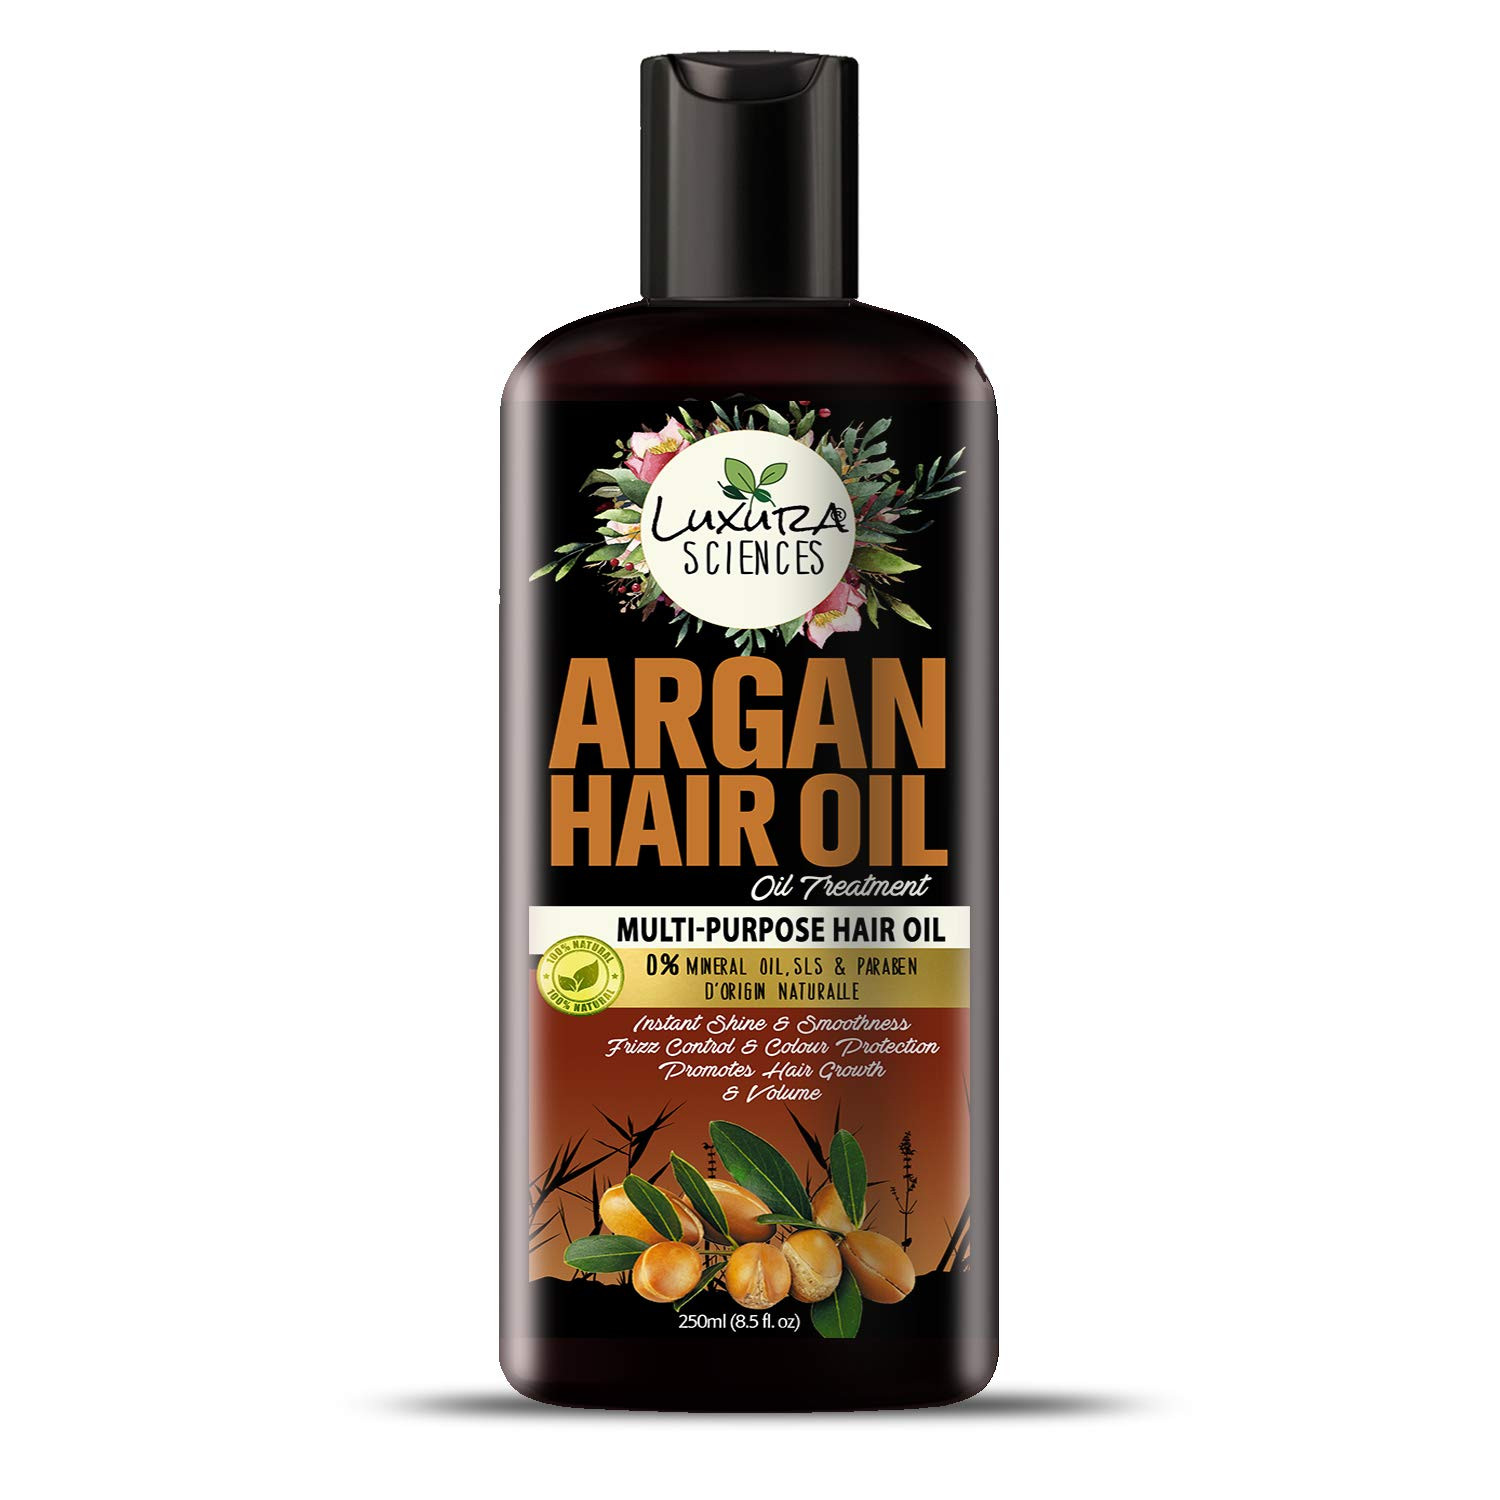 Luxura Sciences Argan Oil For Hair Growth 250ml, No Parabens, No Silicones, No Mineral Oil (New & Advanced)